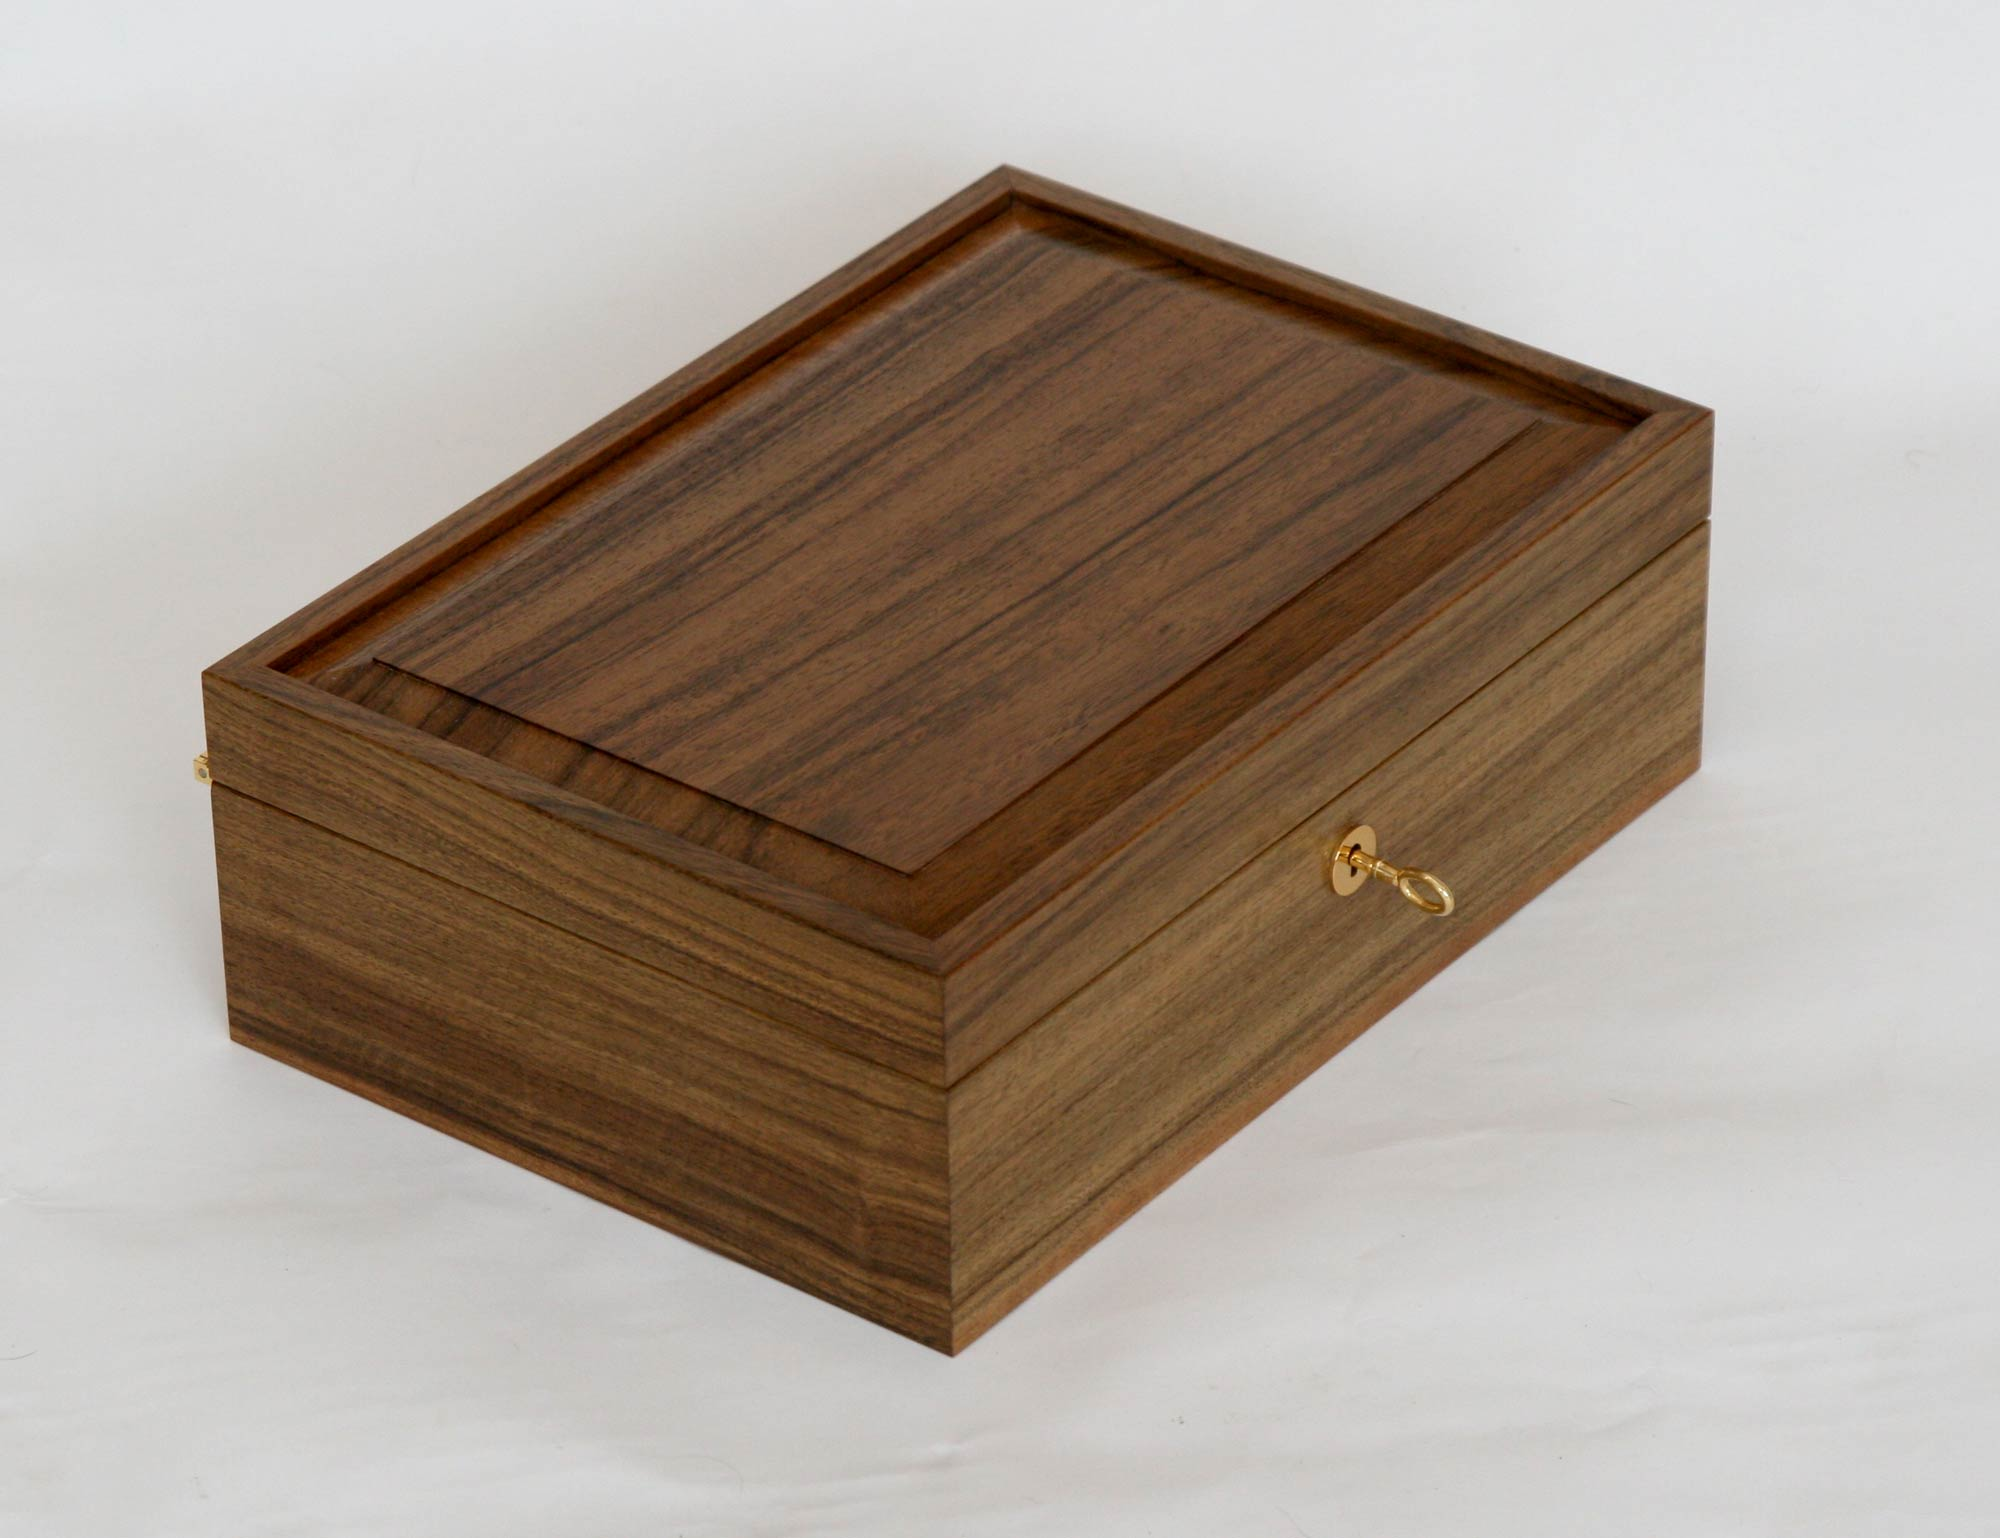 Bespoke Jewellery Box By Furniture Designer James Morley